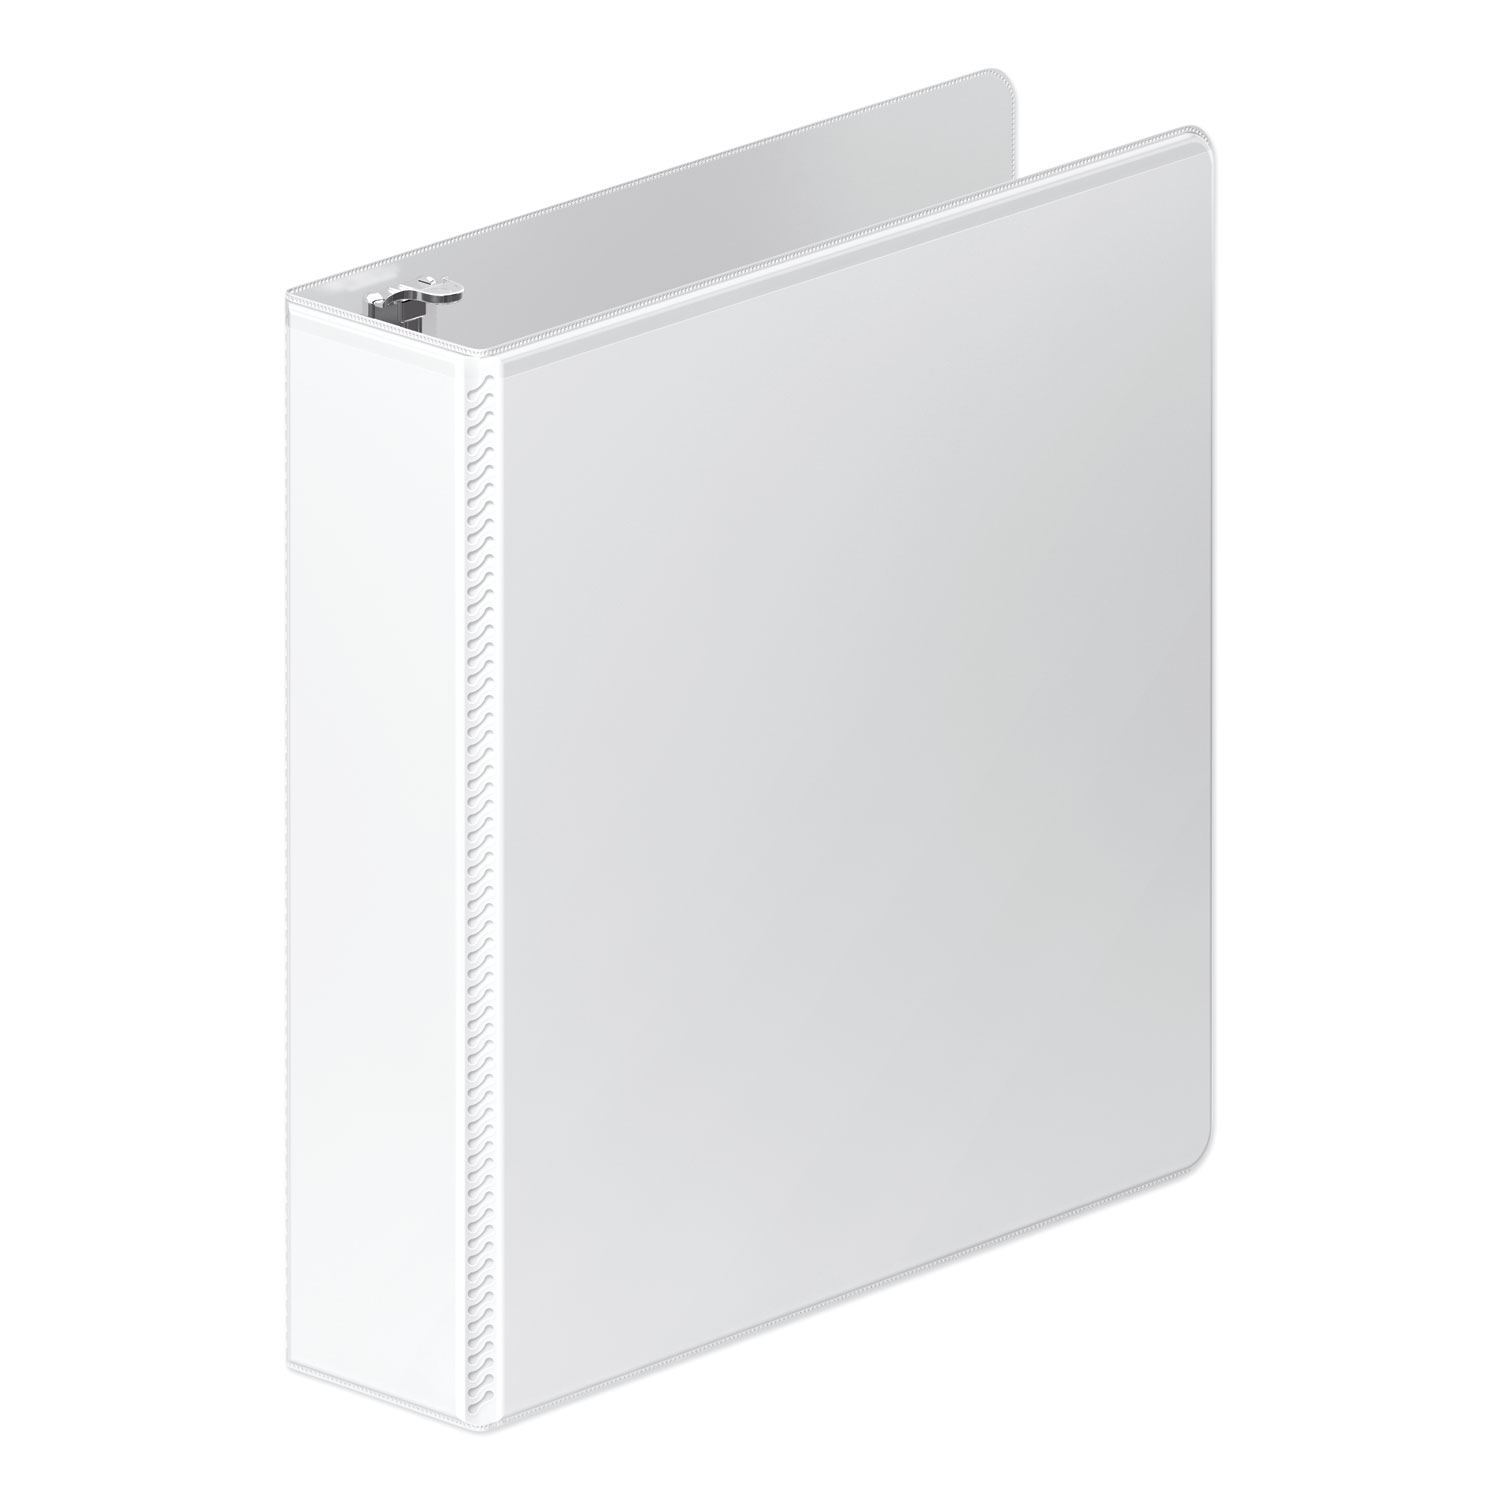 "Heavy-Duty Round Ring View Binder with Extra-Durable Hinge, 3 Rings, 2"" Capacity, 11 x 8.5, White"